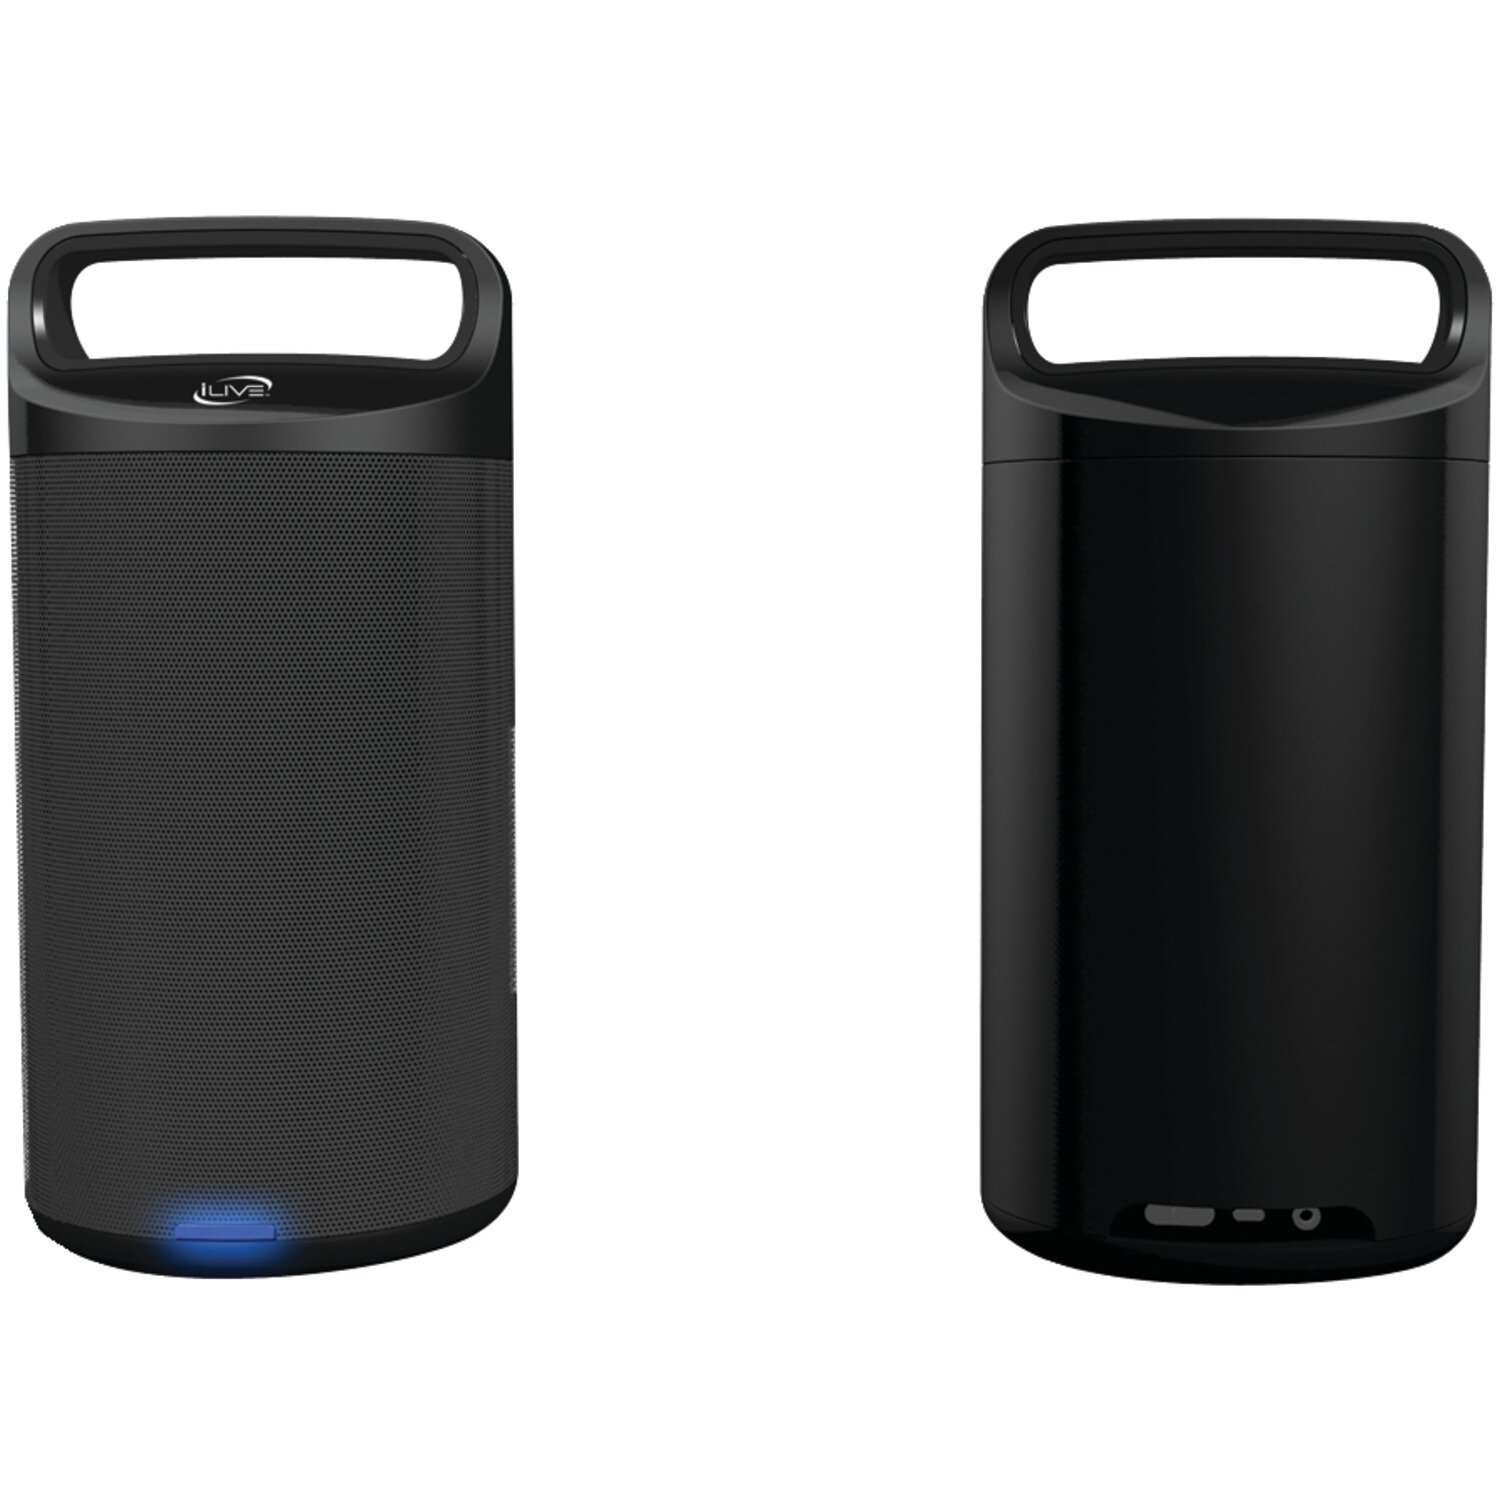 Portable Wireless Bluetooth Speakers by iLive  Includes AC/DC power adapter Digital FM radio Audio line input USB port for mobile phone, iPod or iPhone charging Built-in rechargeable battery Comes with 2 speakers Manufacturer provides 90-day warranty